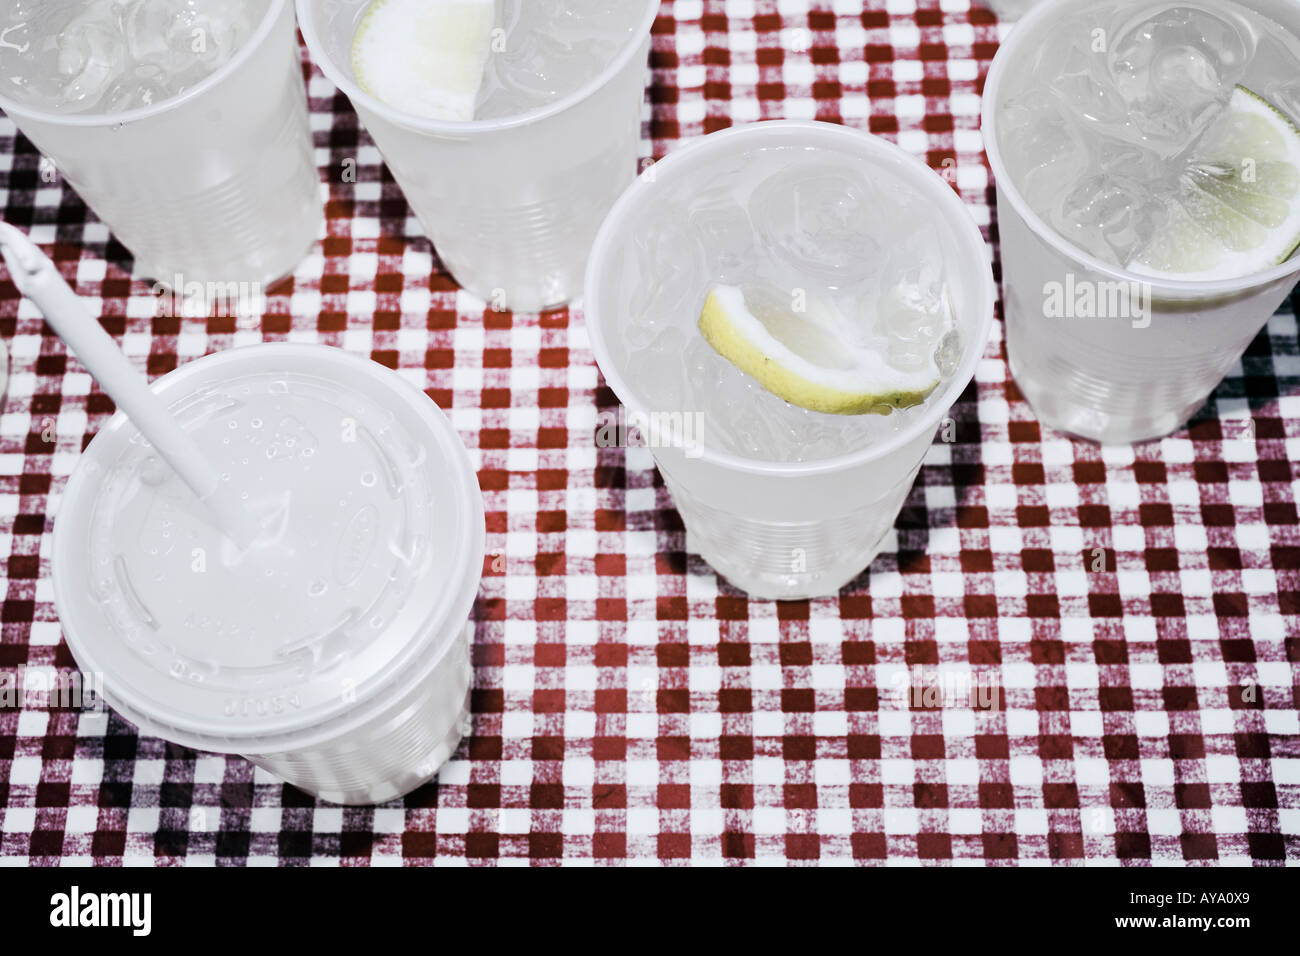 Plastic Cups Filled With Lemonade Standing On Checked Tablecloth - Stock Image